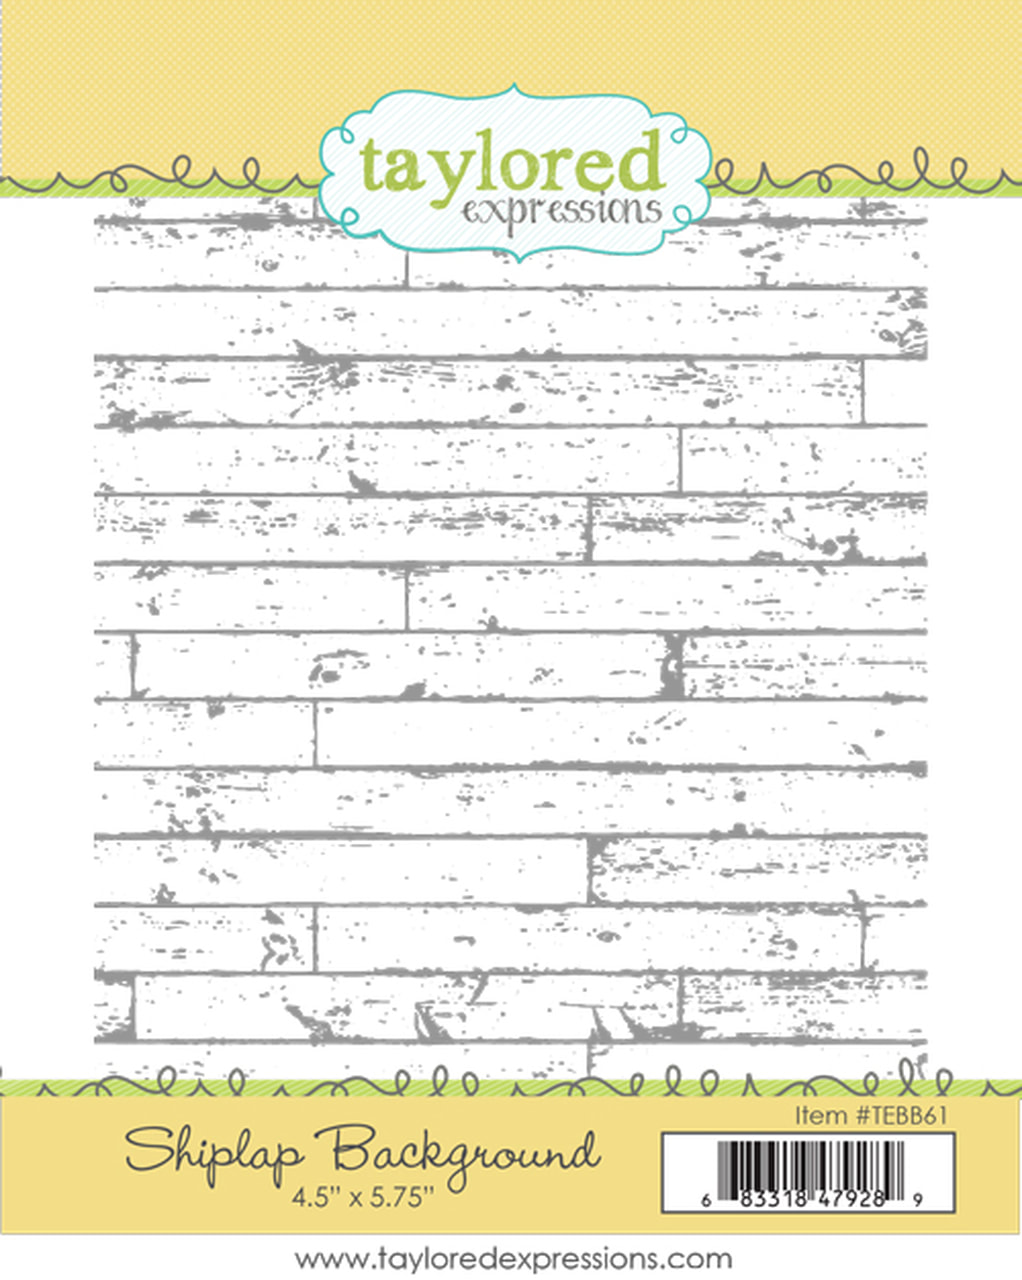 Taylored Expressions - Shiplap Background Stamp